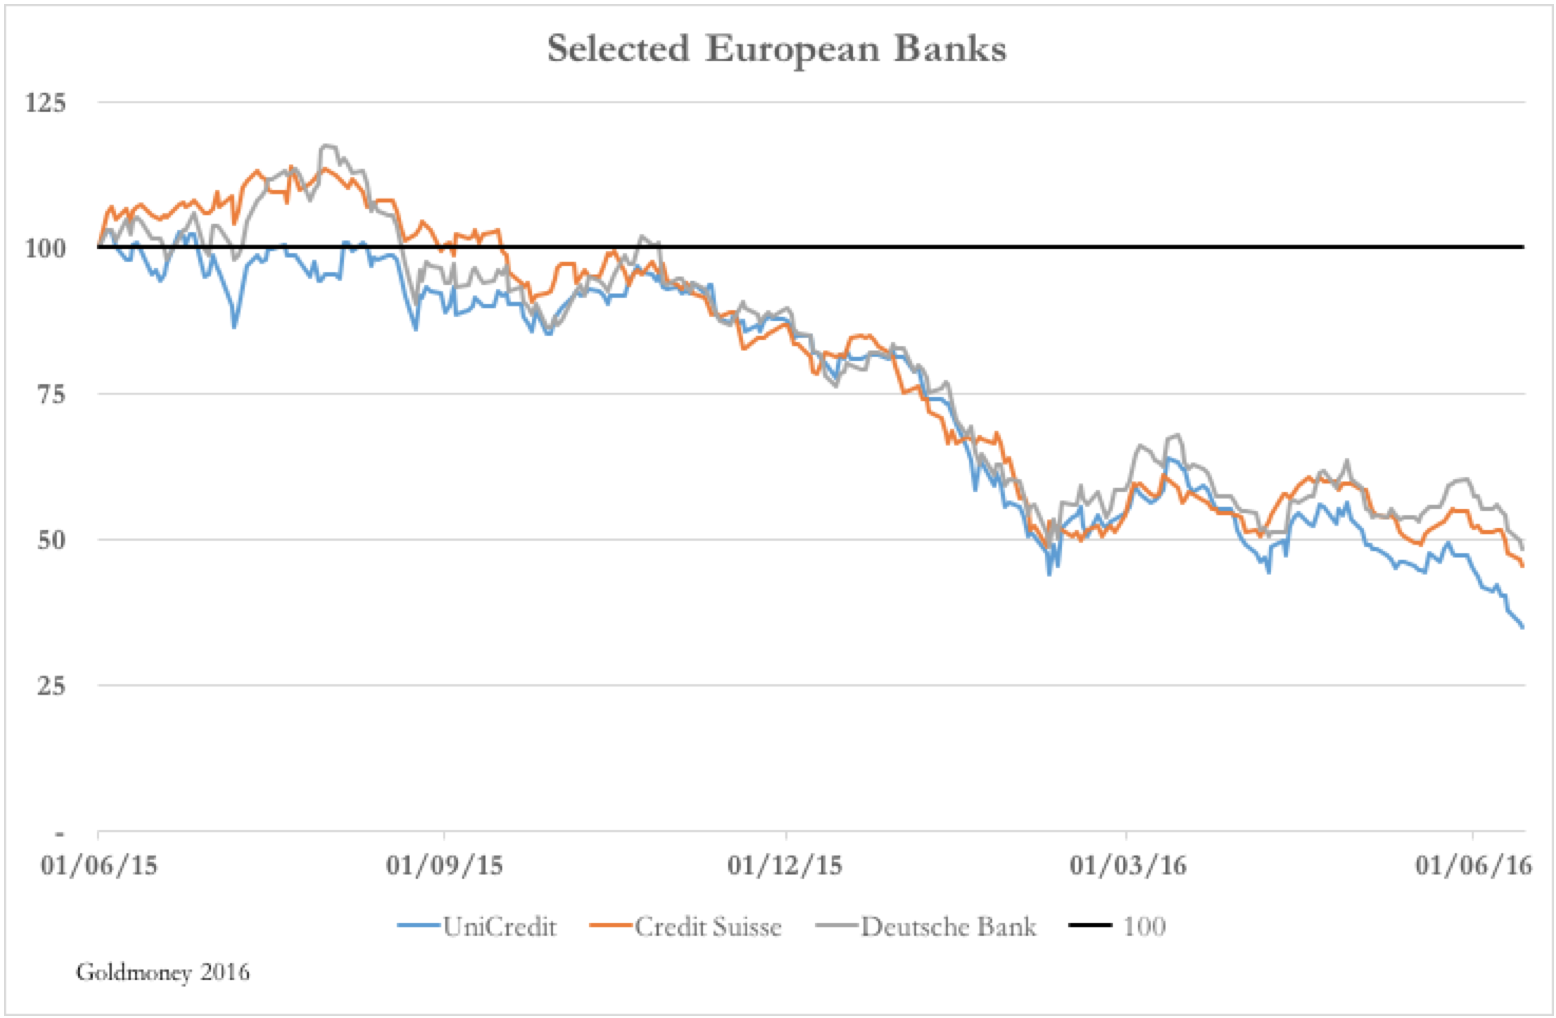 Selected European Banks